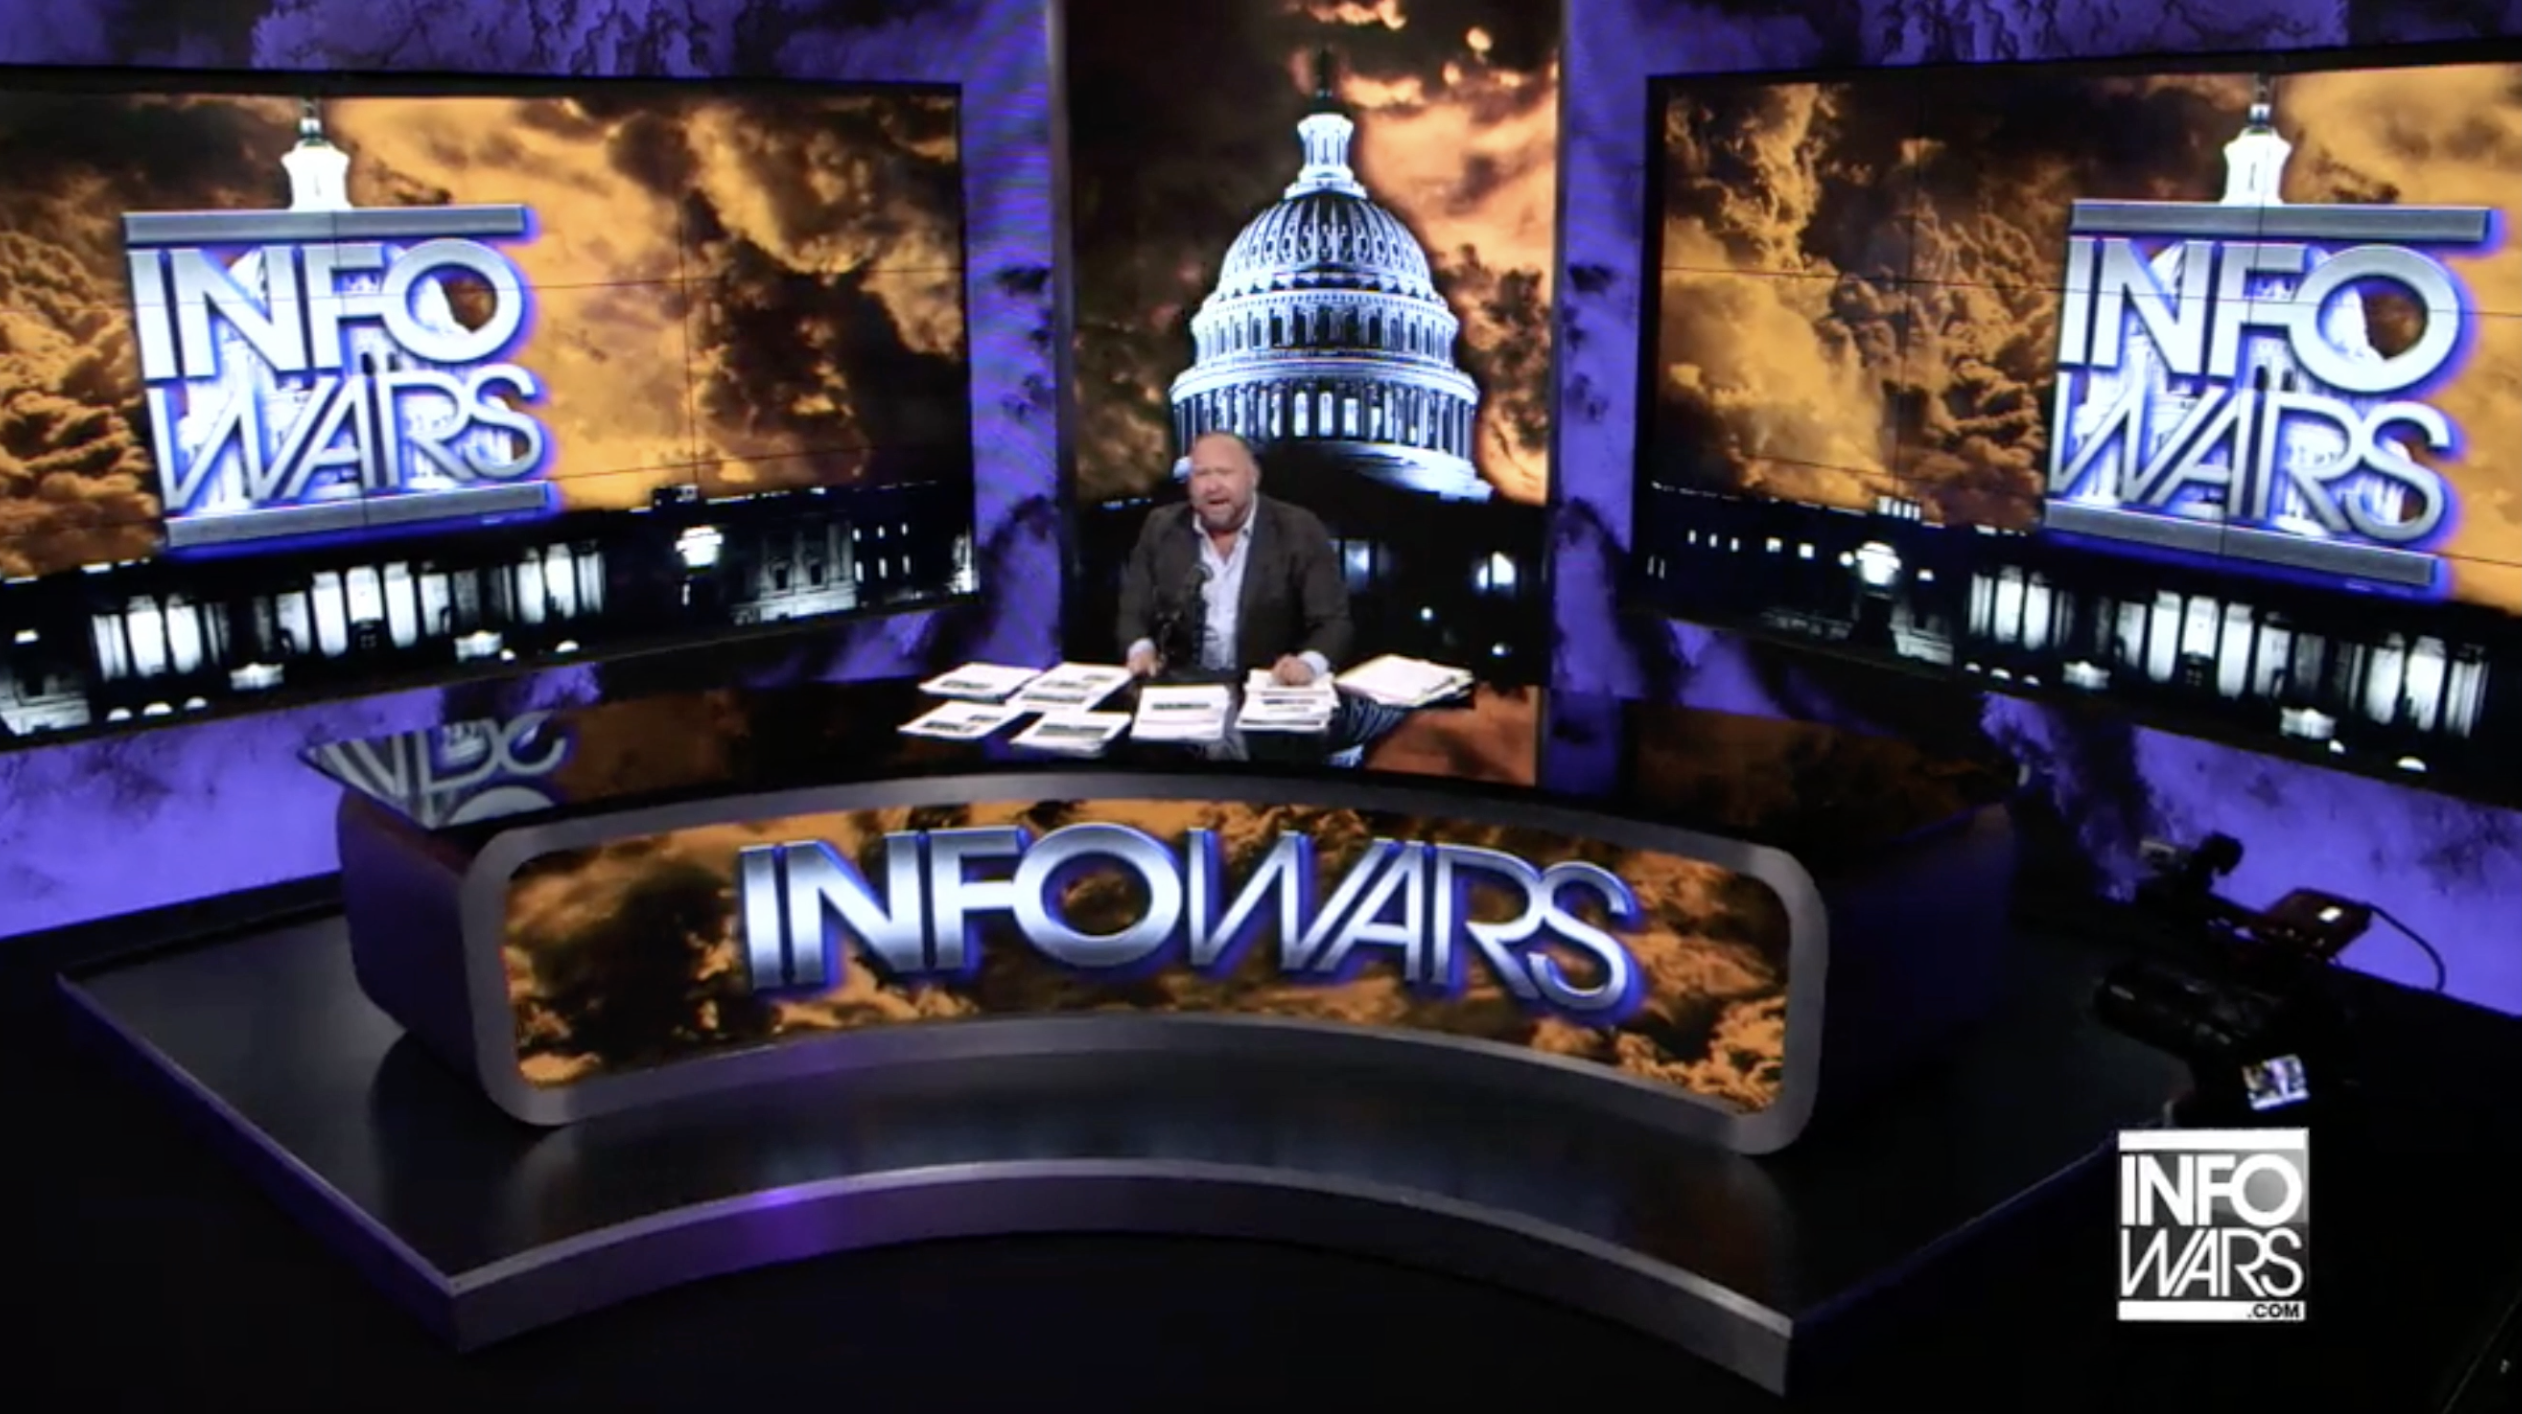 Alex Jones Infowars Studio EXZM August 25th 2020